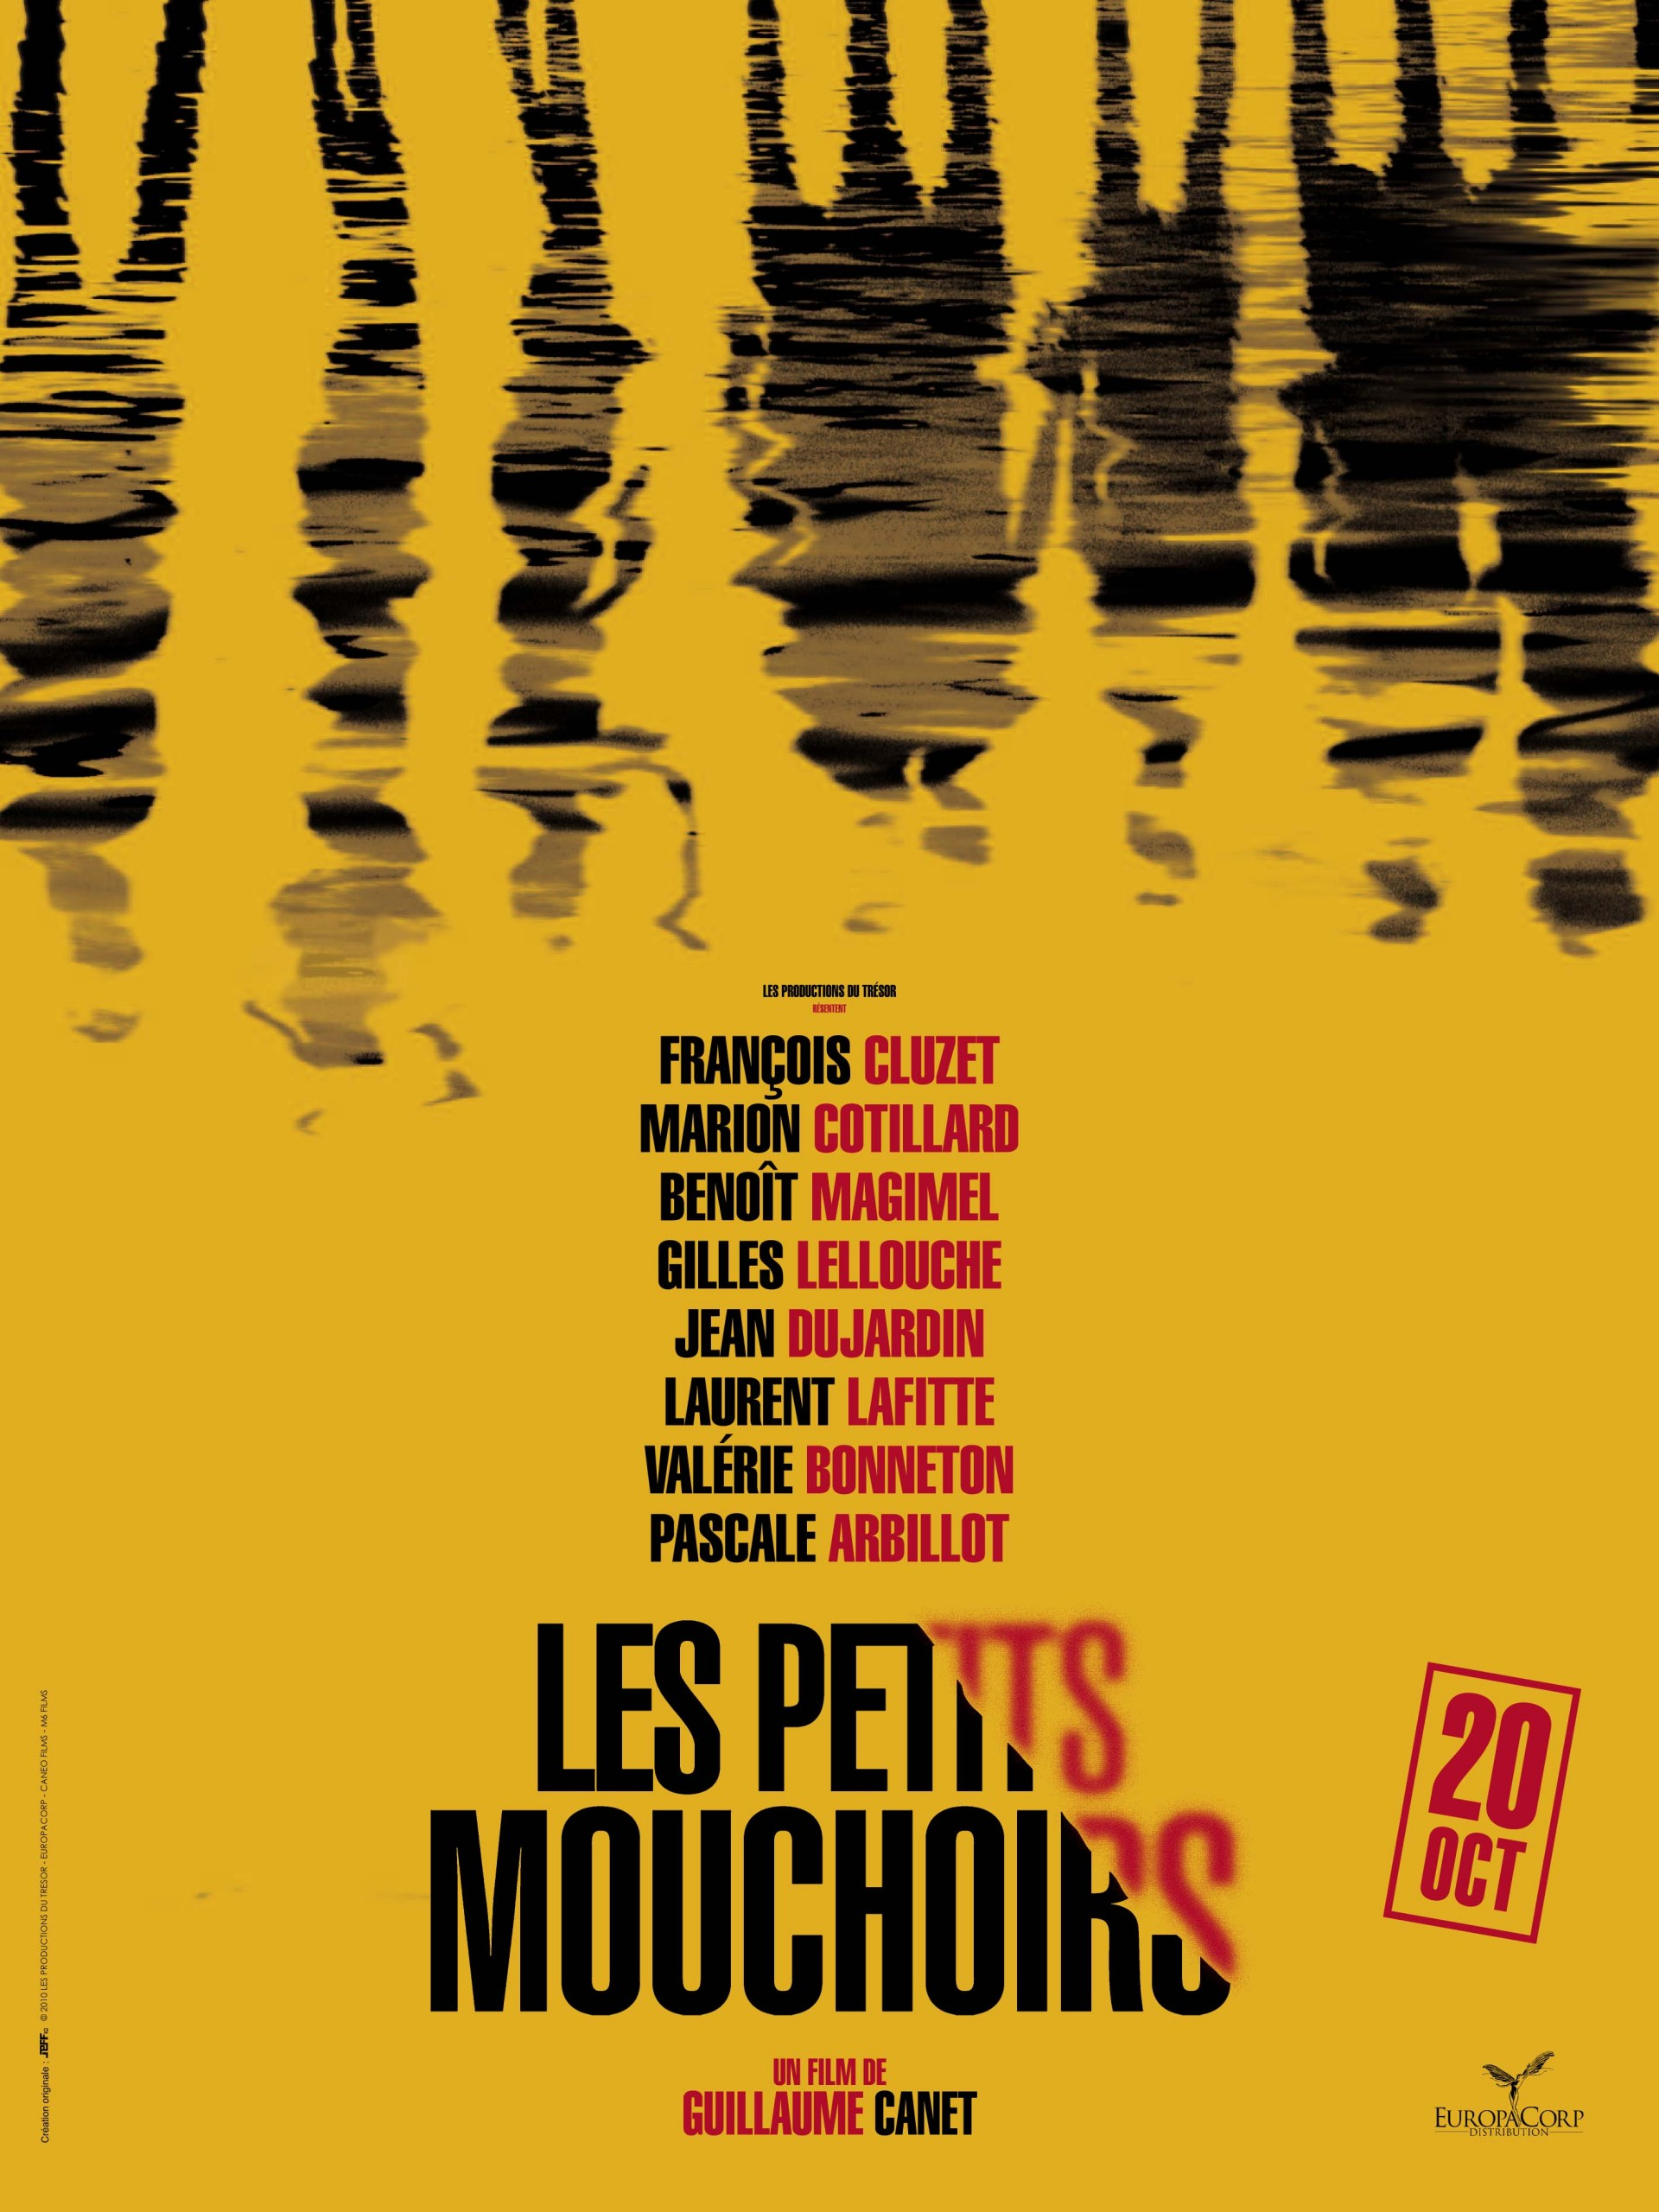 Les Petits mouchoirs [DVDRiP] [FRENCH] [MULTI]